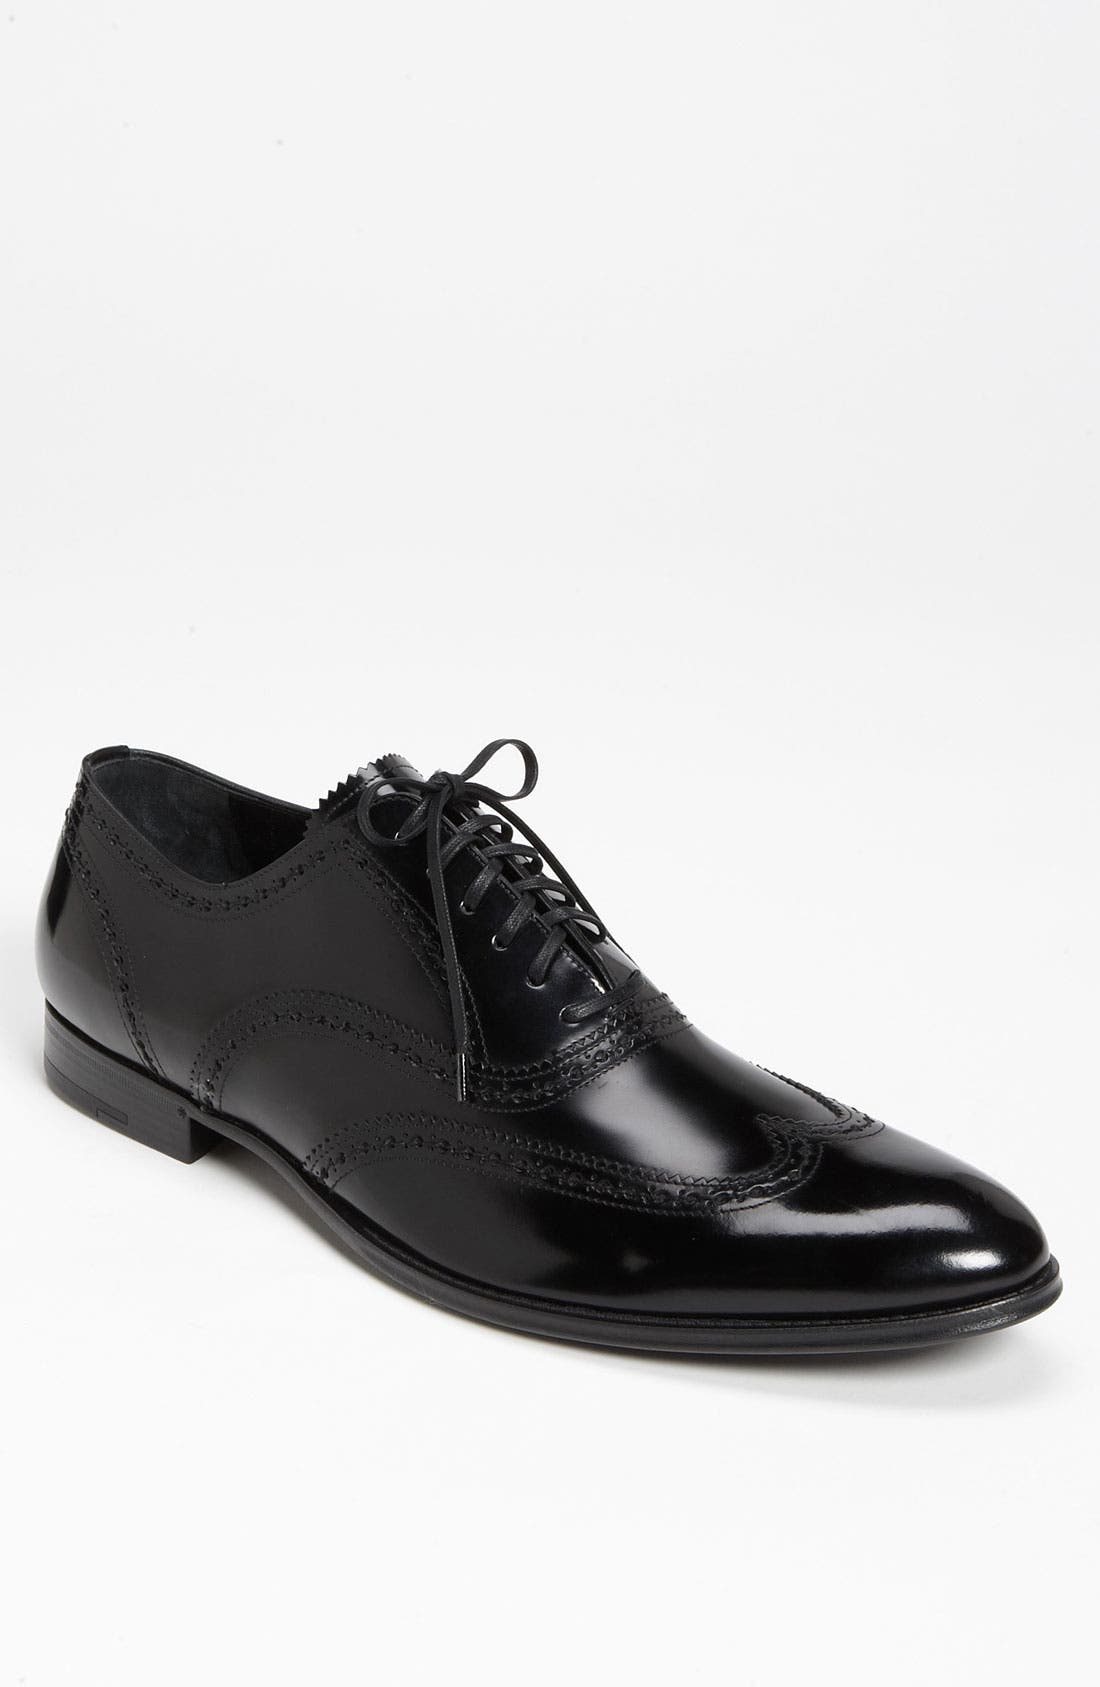 Main Image - Dolce&Gabbana Wingtip Oxford